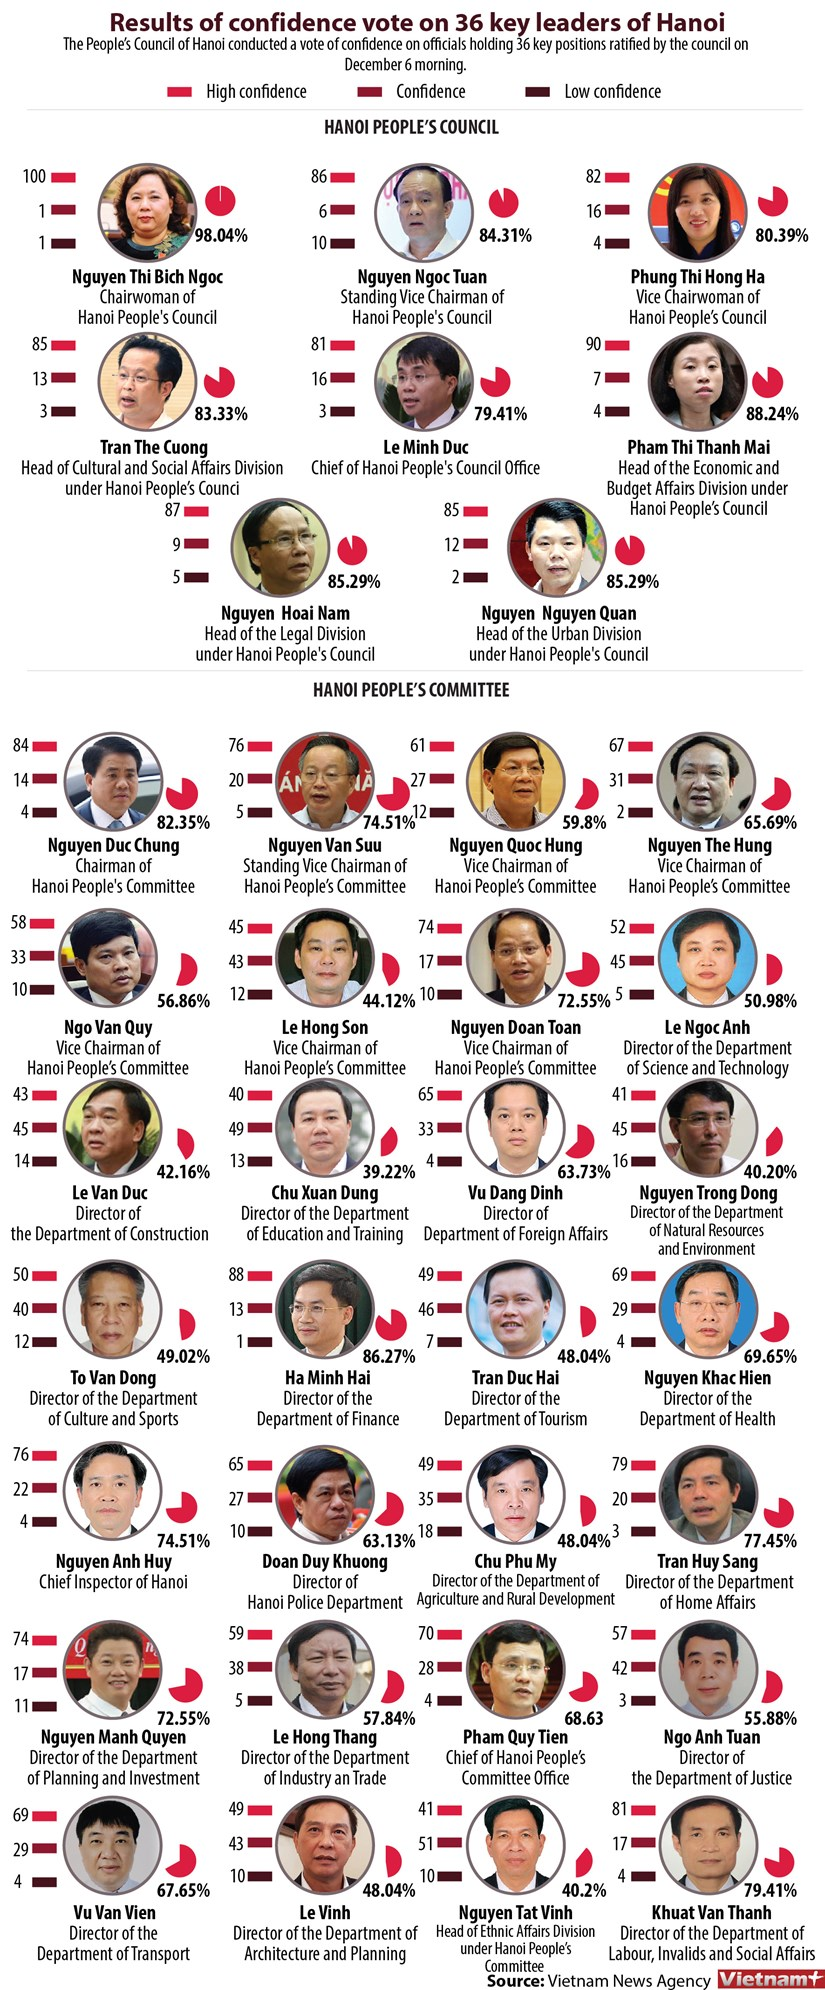 Results of confidence vote on 36 key leaders of Hanoi hinh anh 1